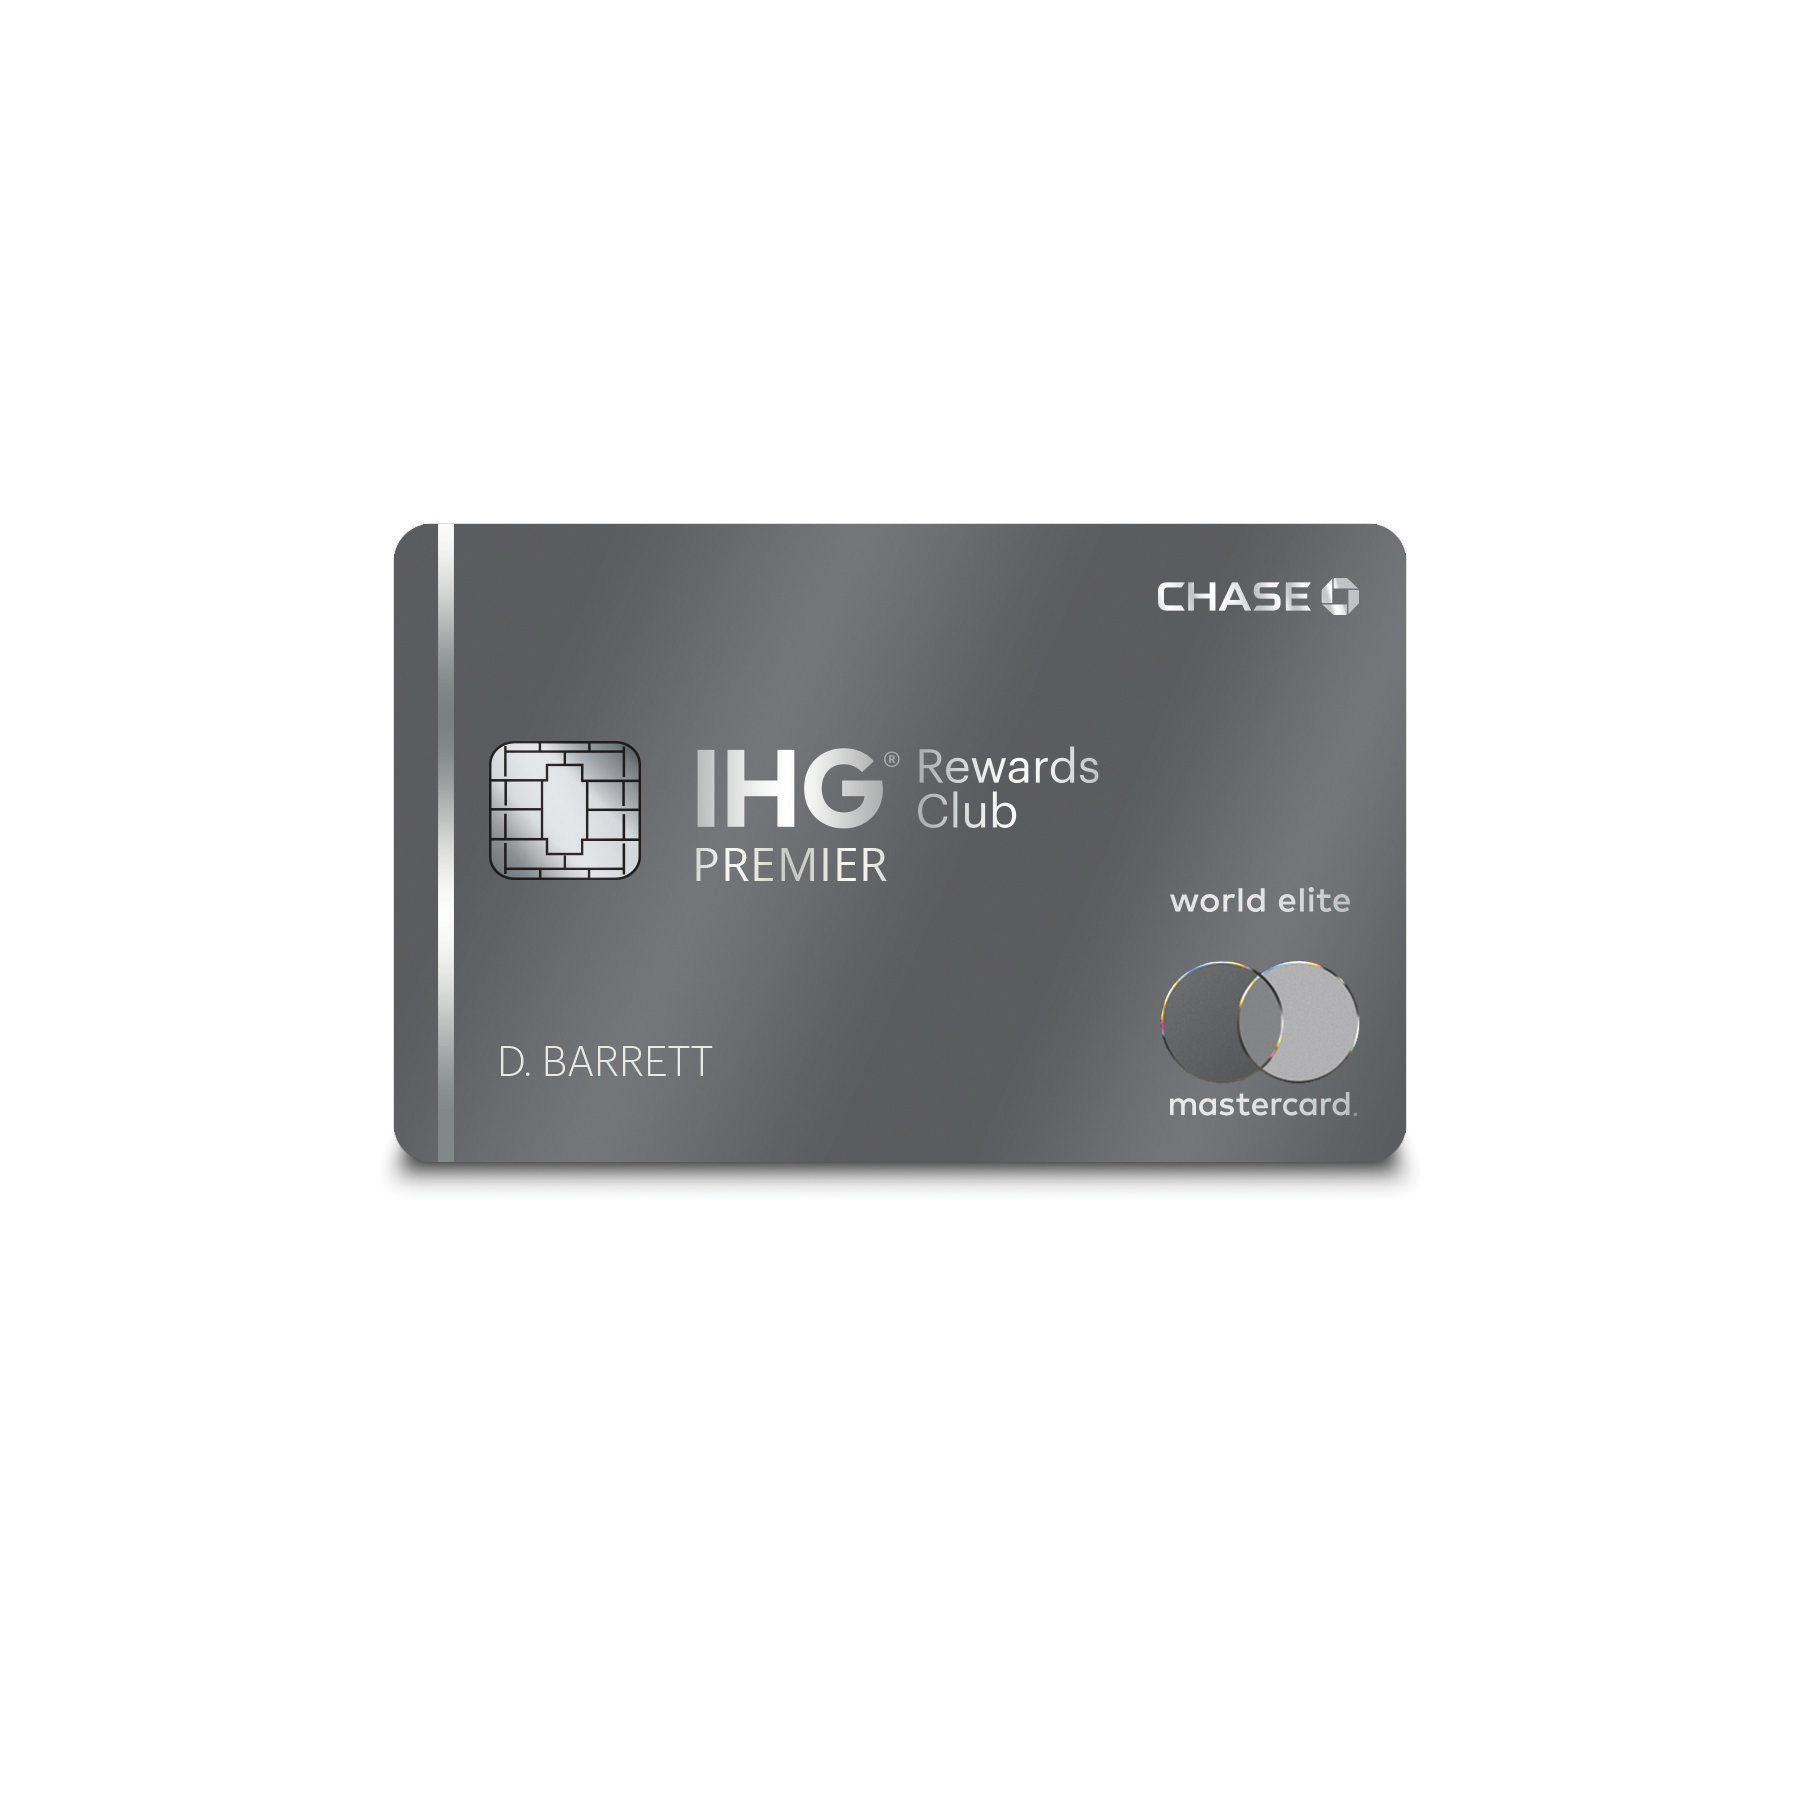 Chase and IHG® Expand Card Portfolio to Offer Richest Rewards Yet ...